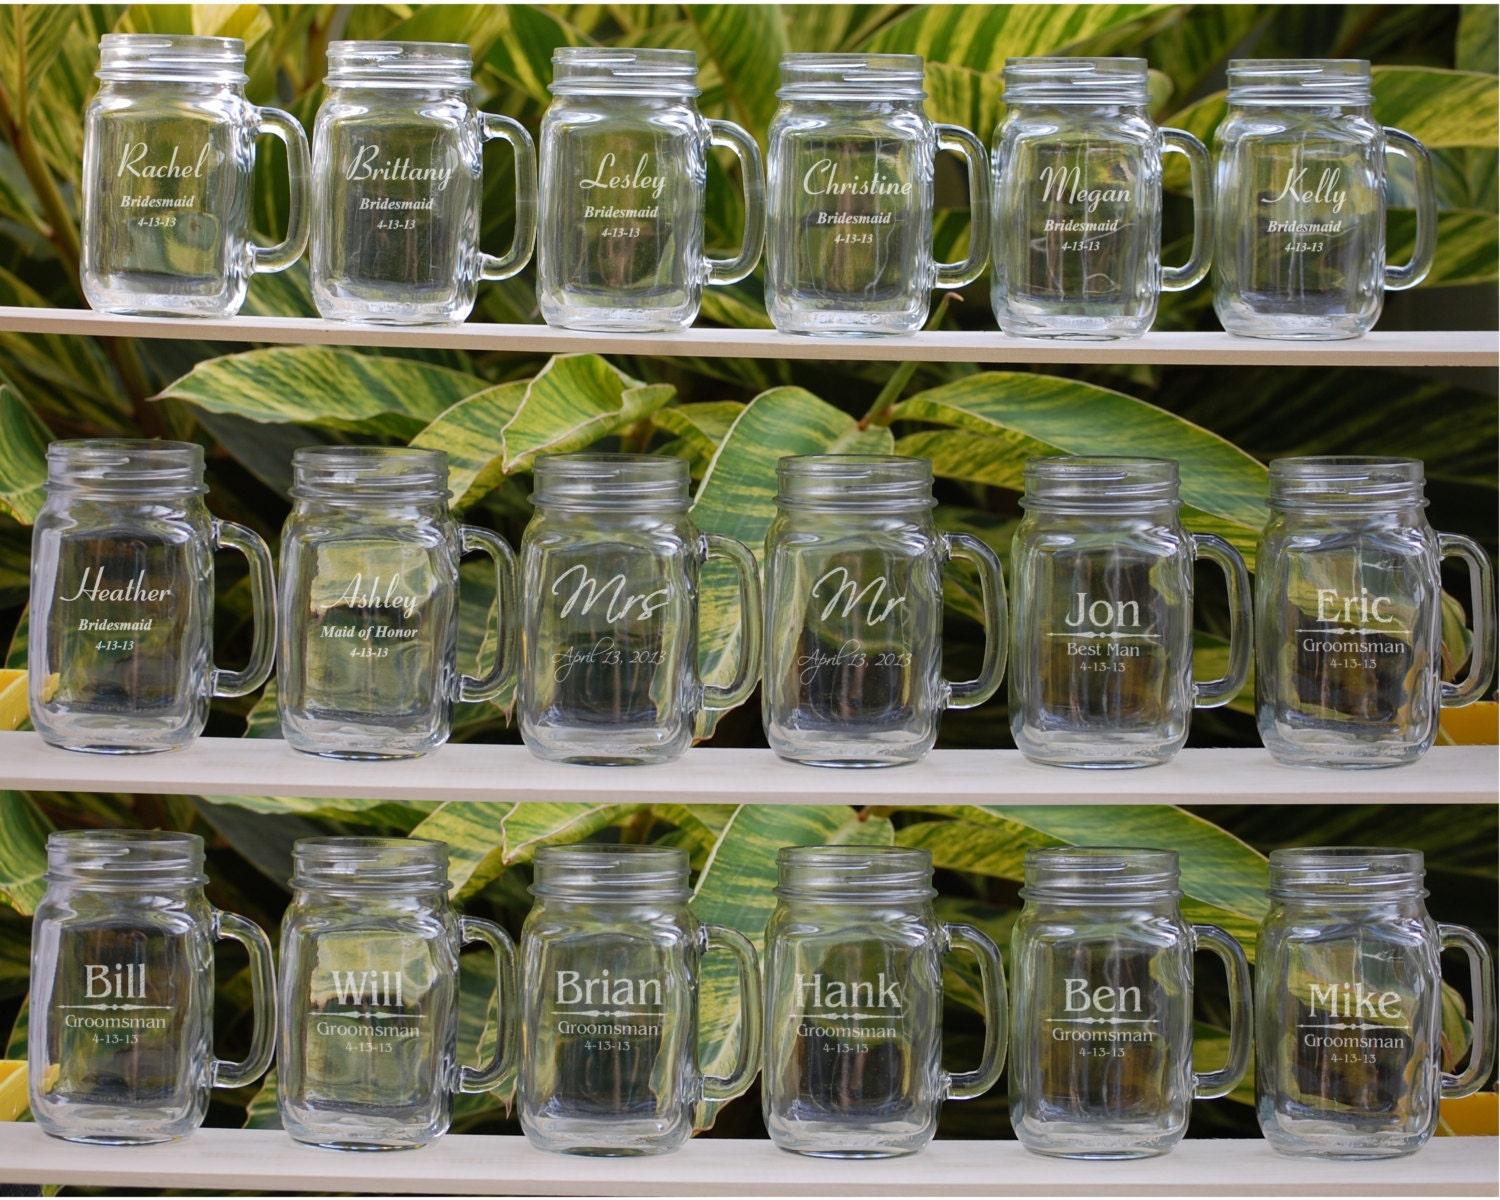 Mason Jar Wedding Gifts: 17 Wedding Party Gifts Wedding Party Favors Personalized